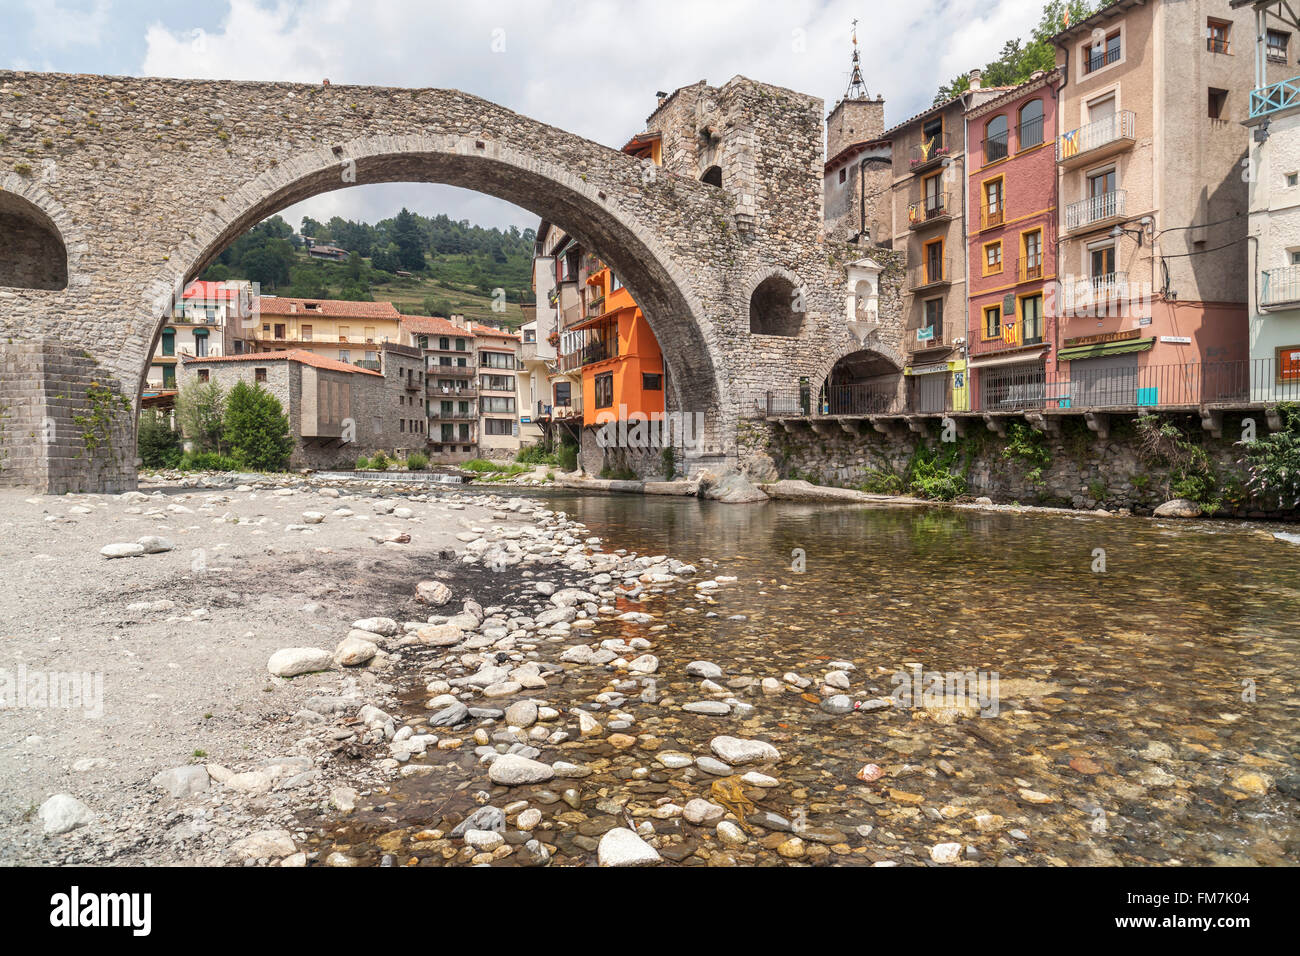 Pont Nou, bridge,Camprodon,Catalonia,Spain. - Stock Image